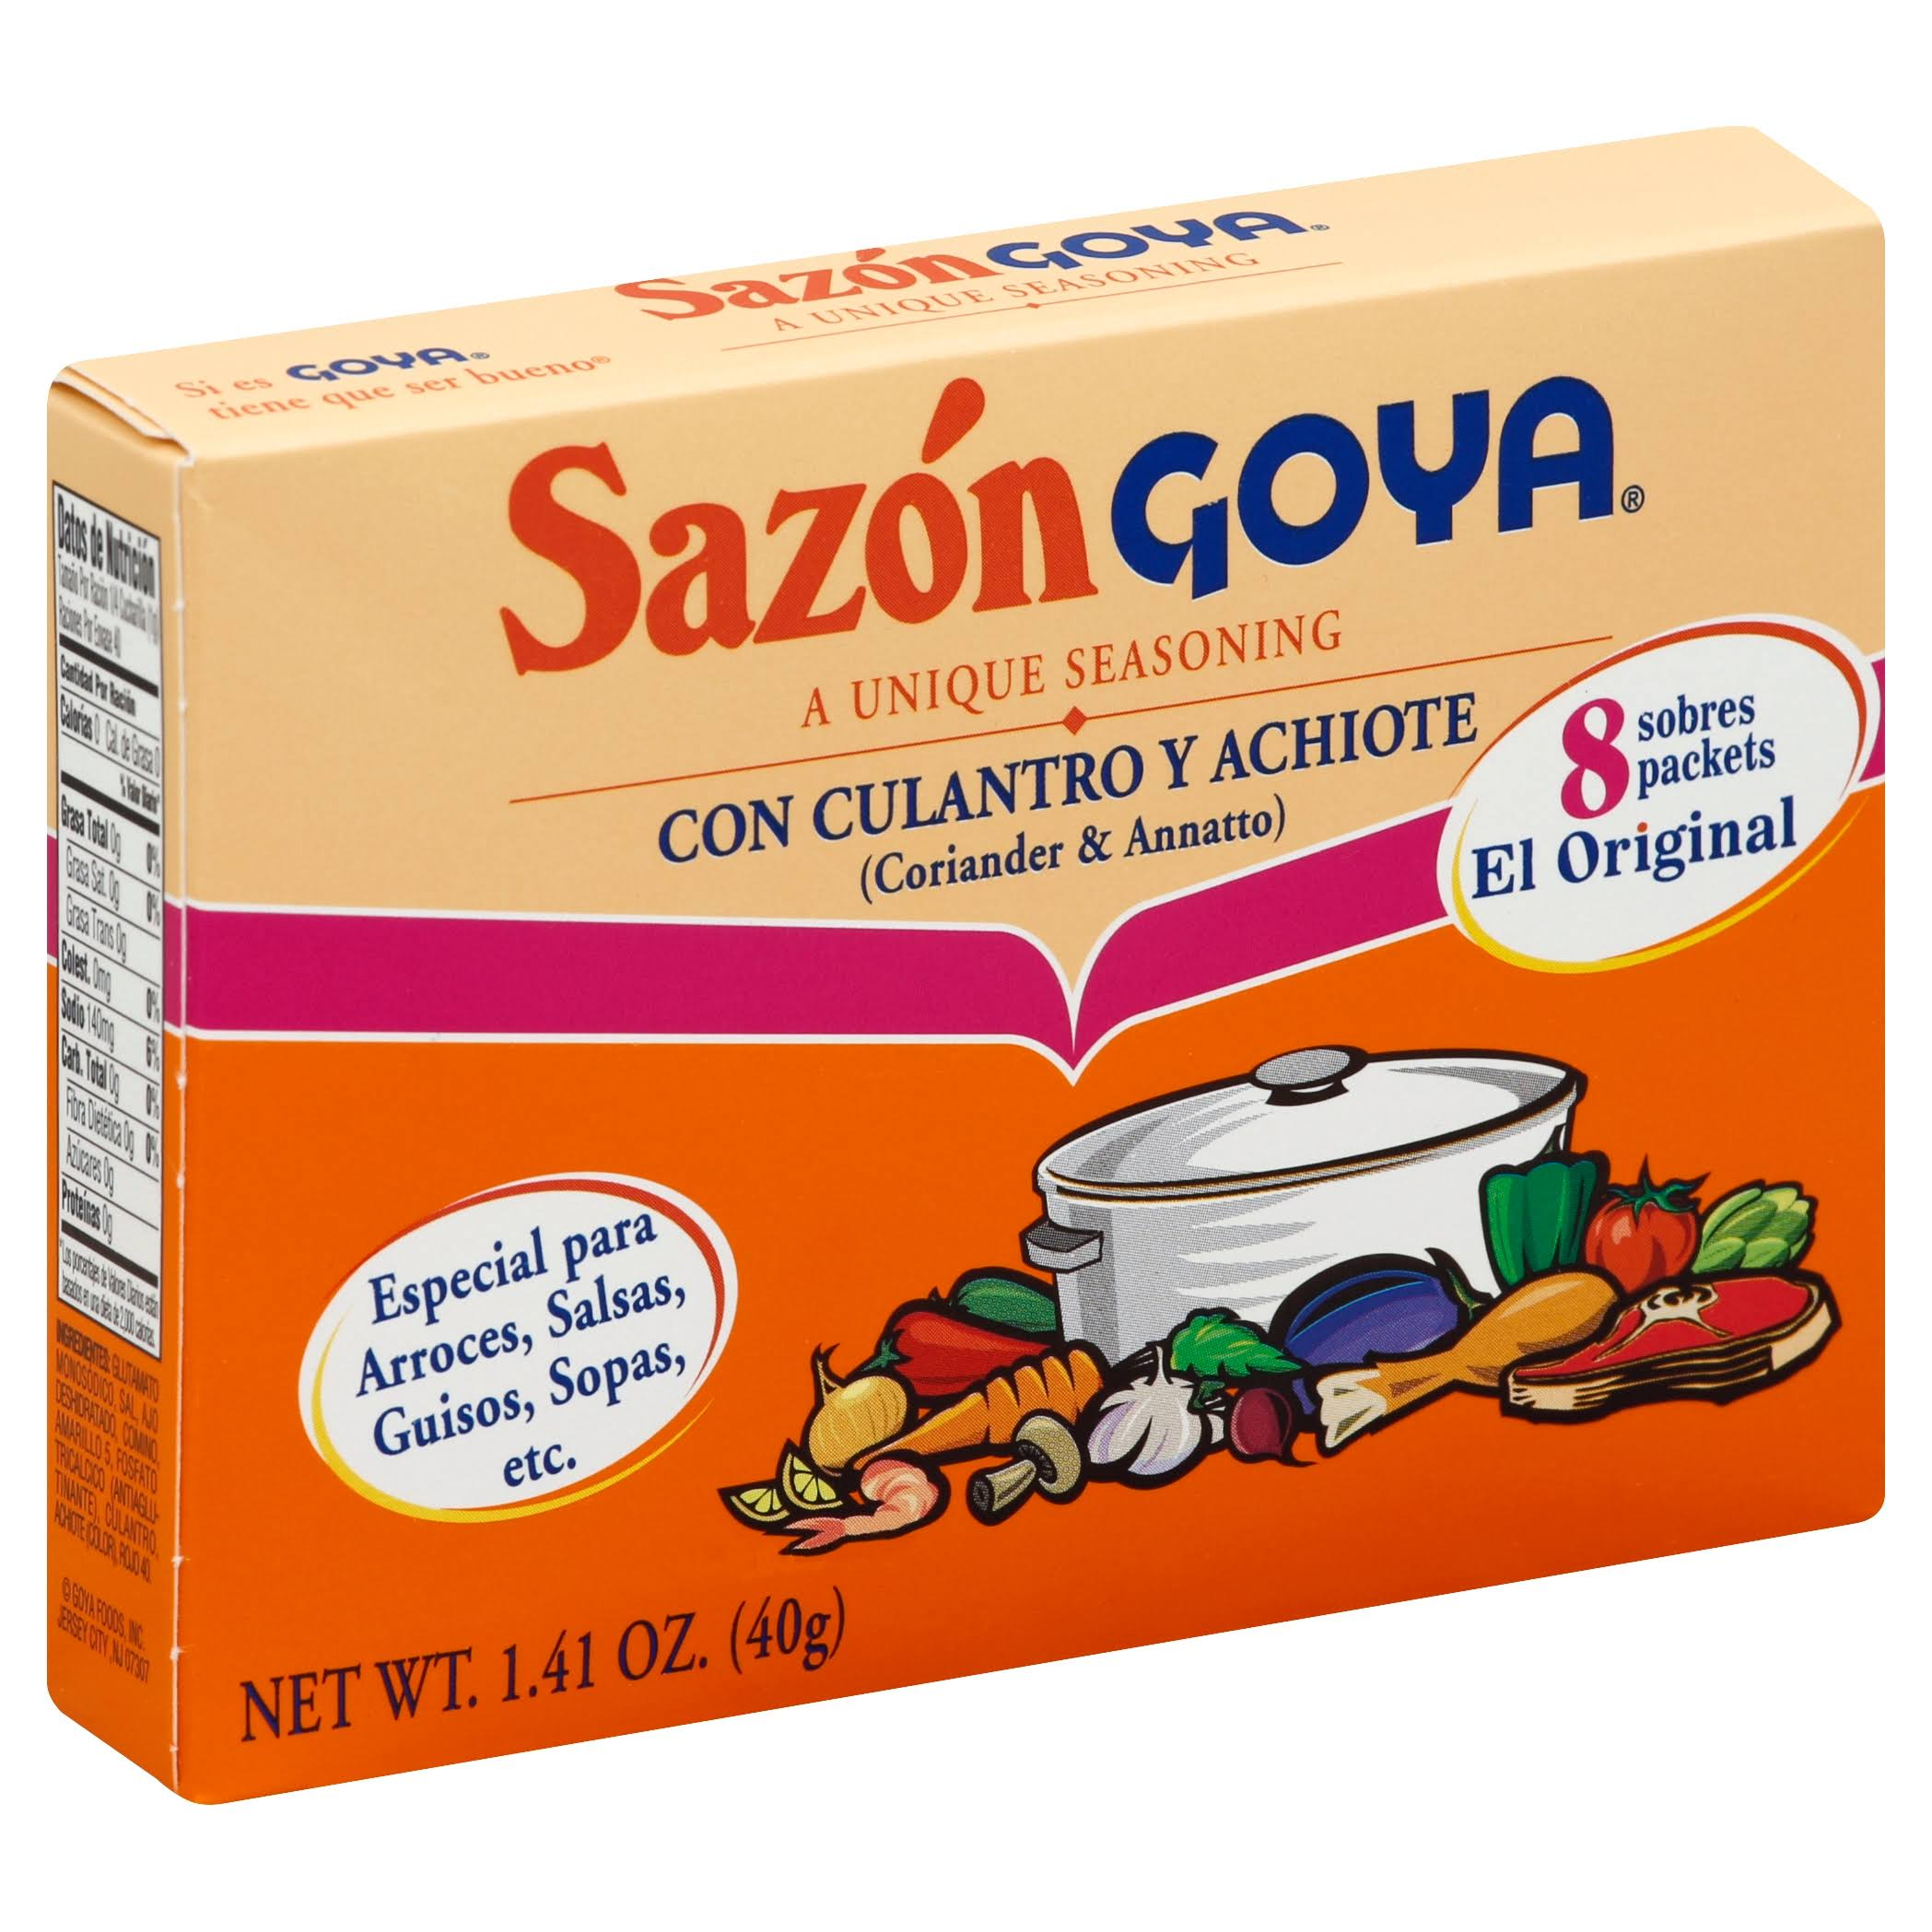 Sazon Goya Cilantro Achiote Seasoning - 1.41oz